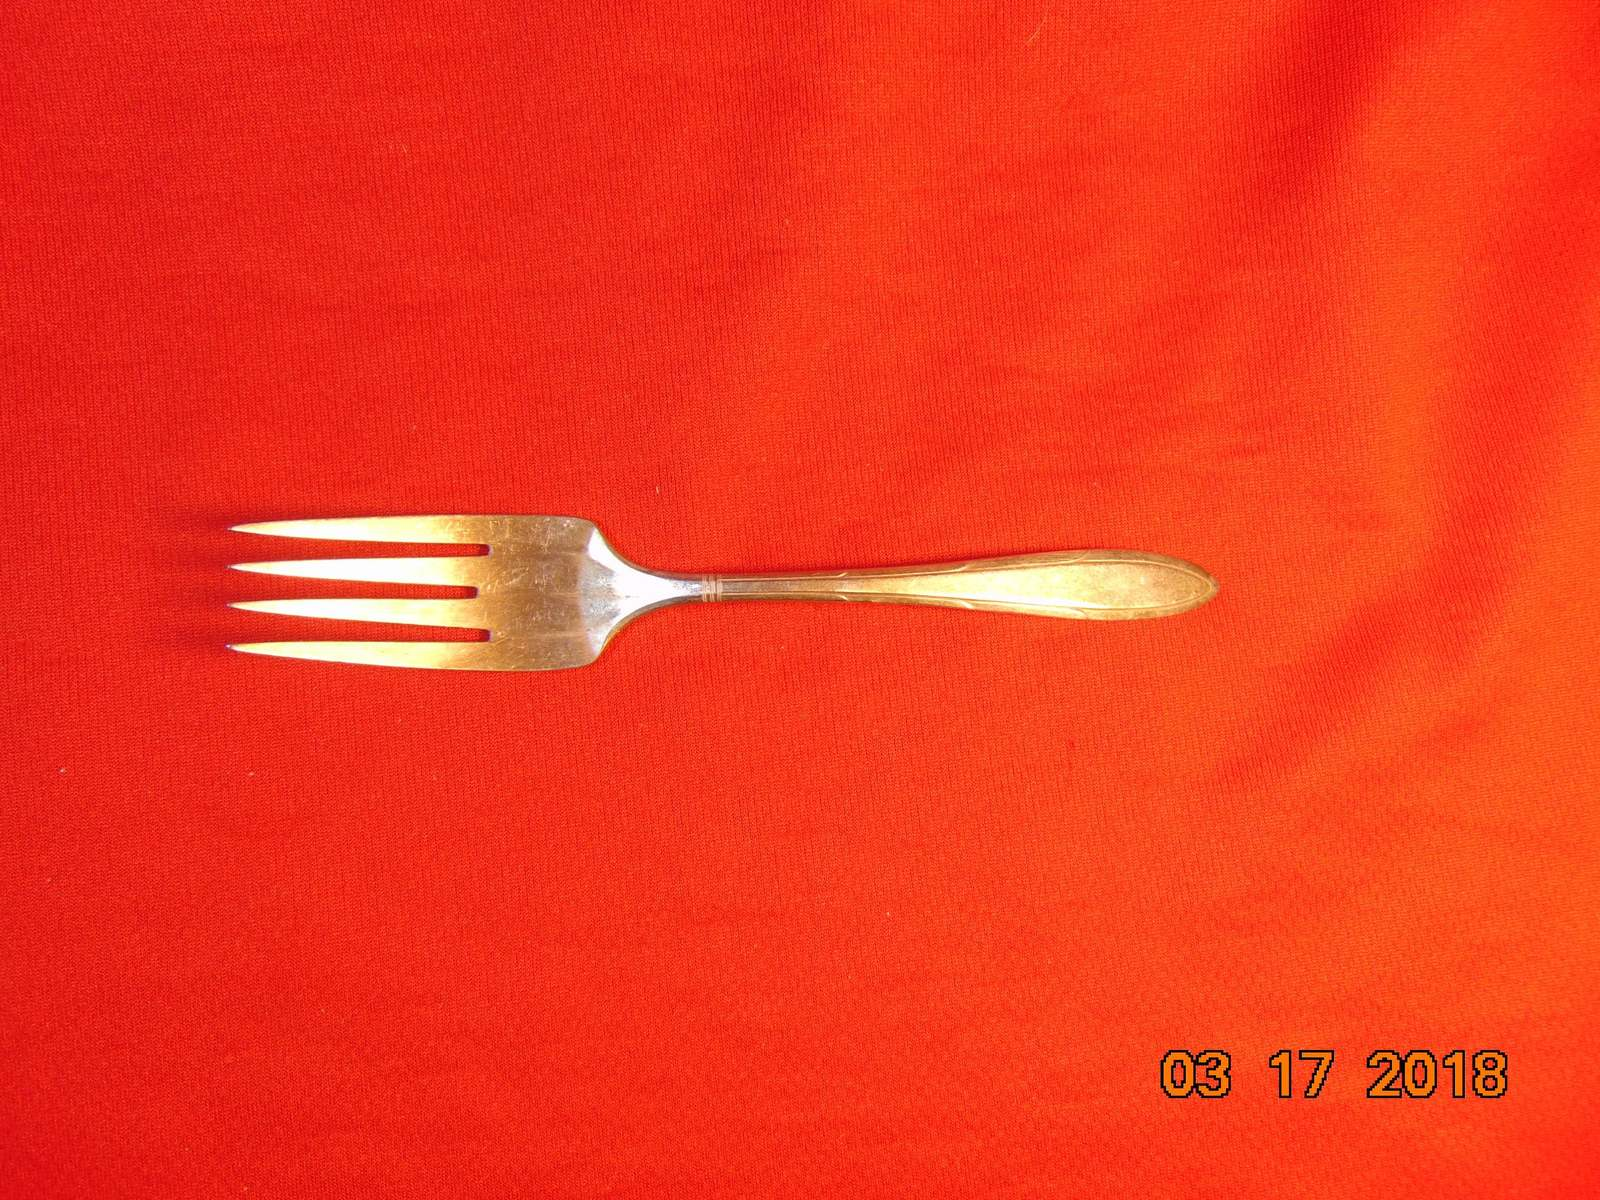 "Primary image for 6 1/4"", Silver Plated, Salad Fork, Nobility Plate/Oneida, 1937 Reverie Pattern"